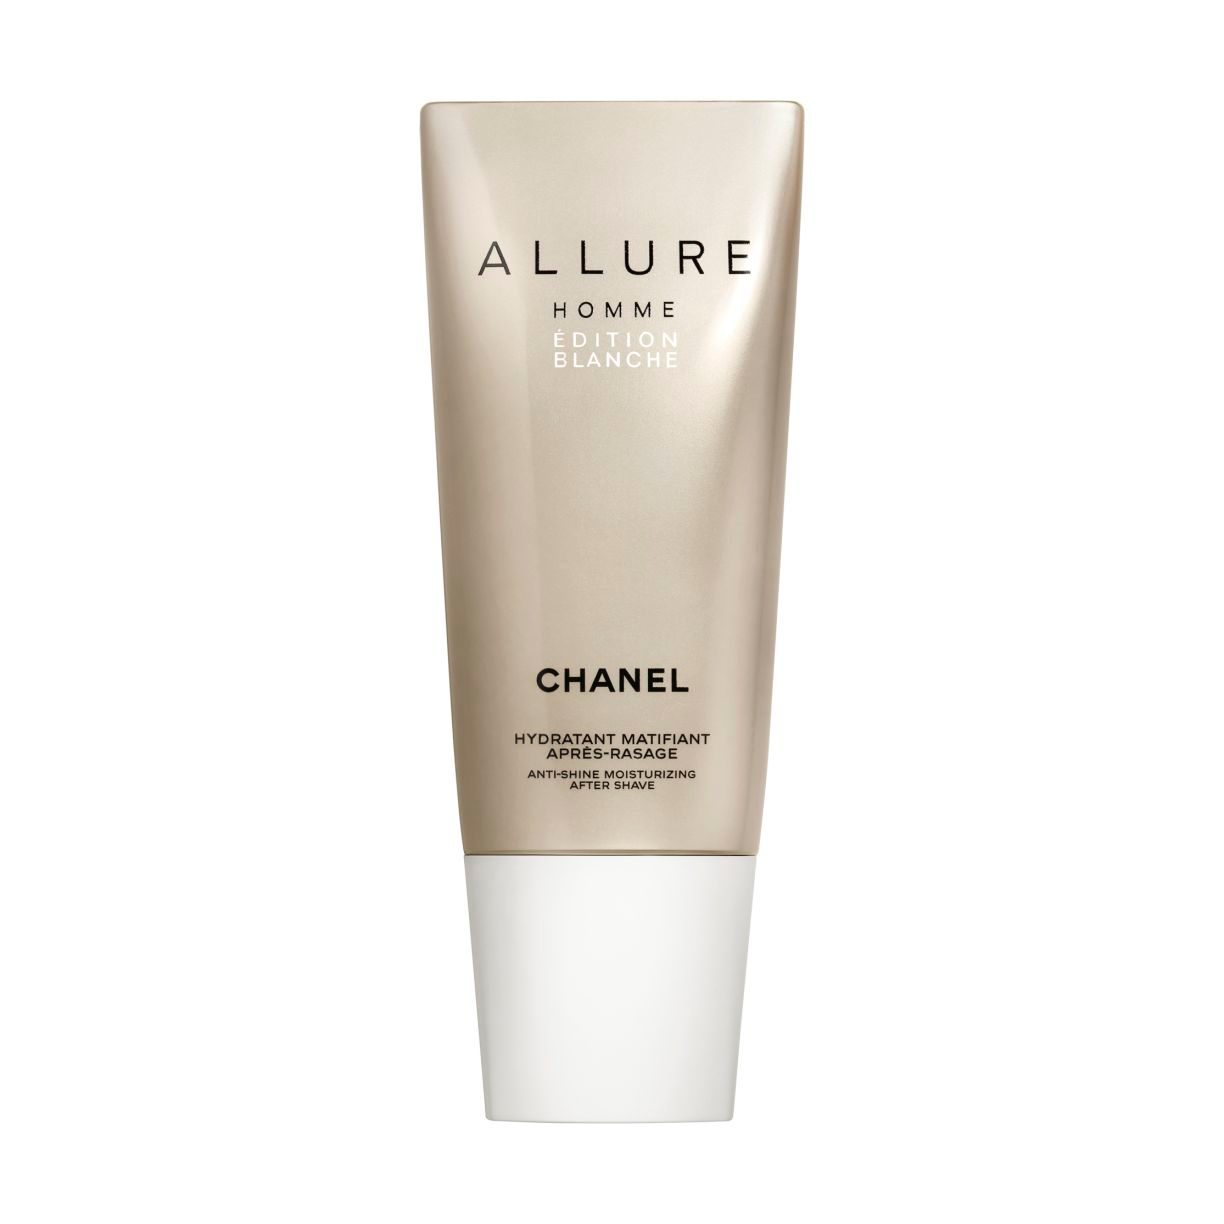 ALLURE HOMME ÉDITION BLANCHE ANTI-SHINE MOISTURISING AFTER SHAVE